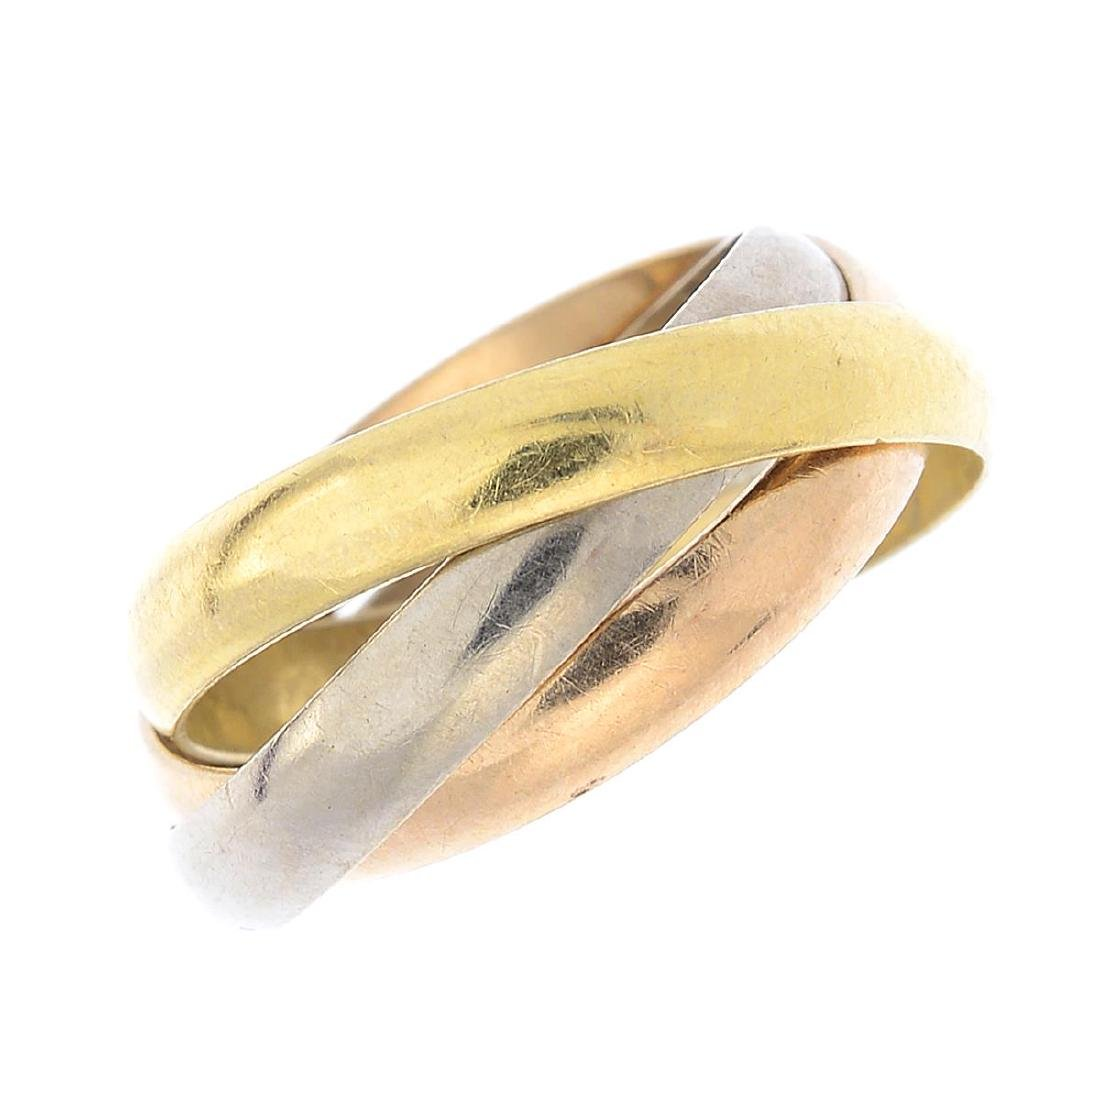 CARTIER - an 18ct gold 'Trinity' ring. Designed as